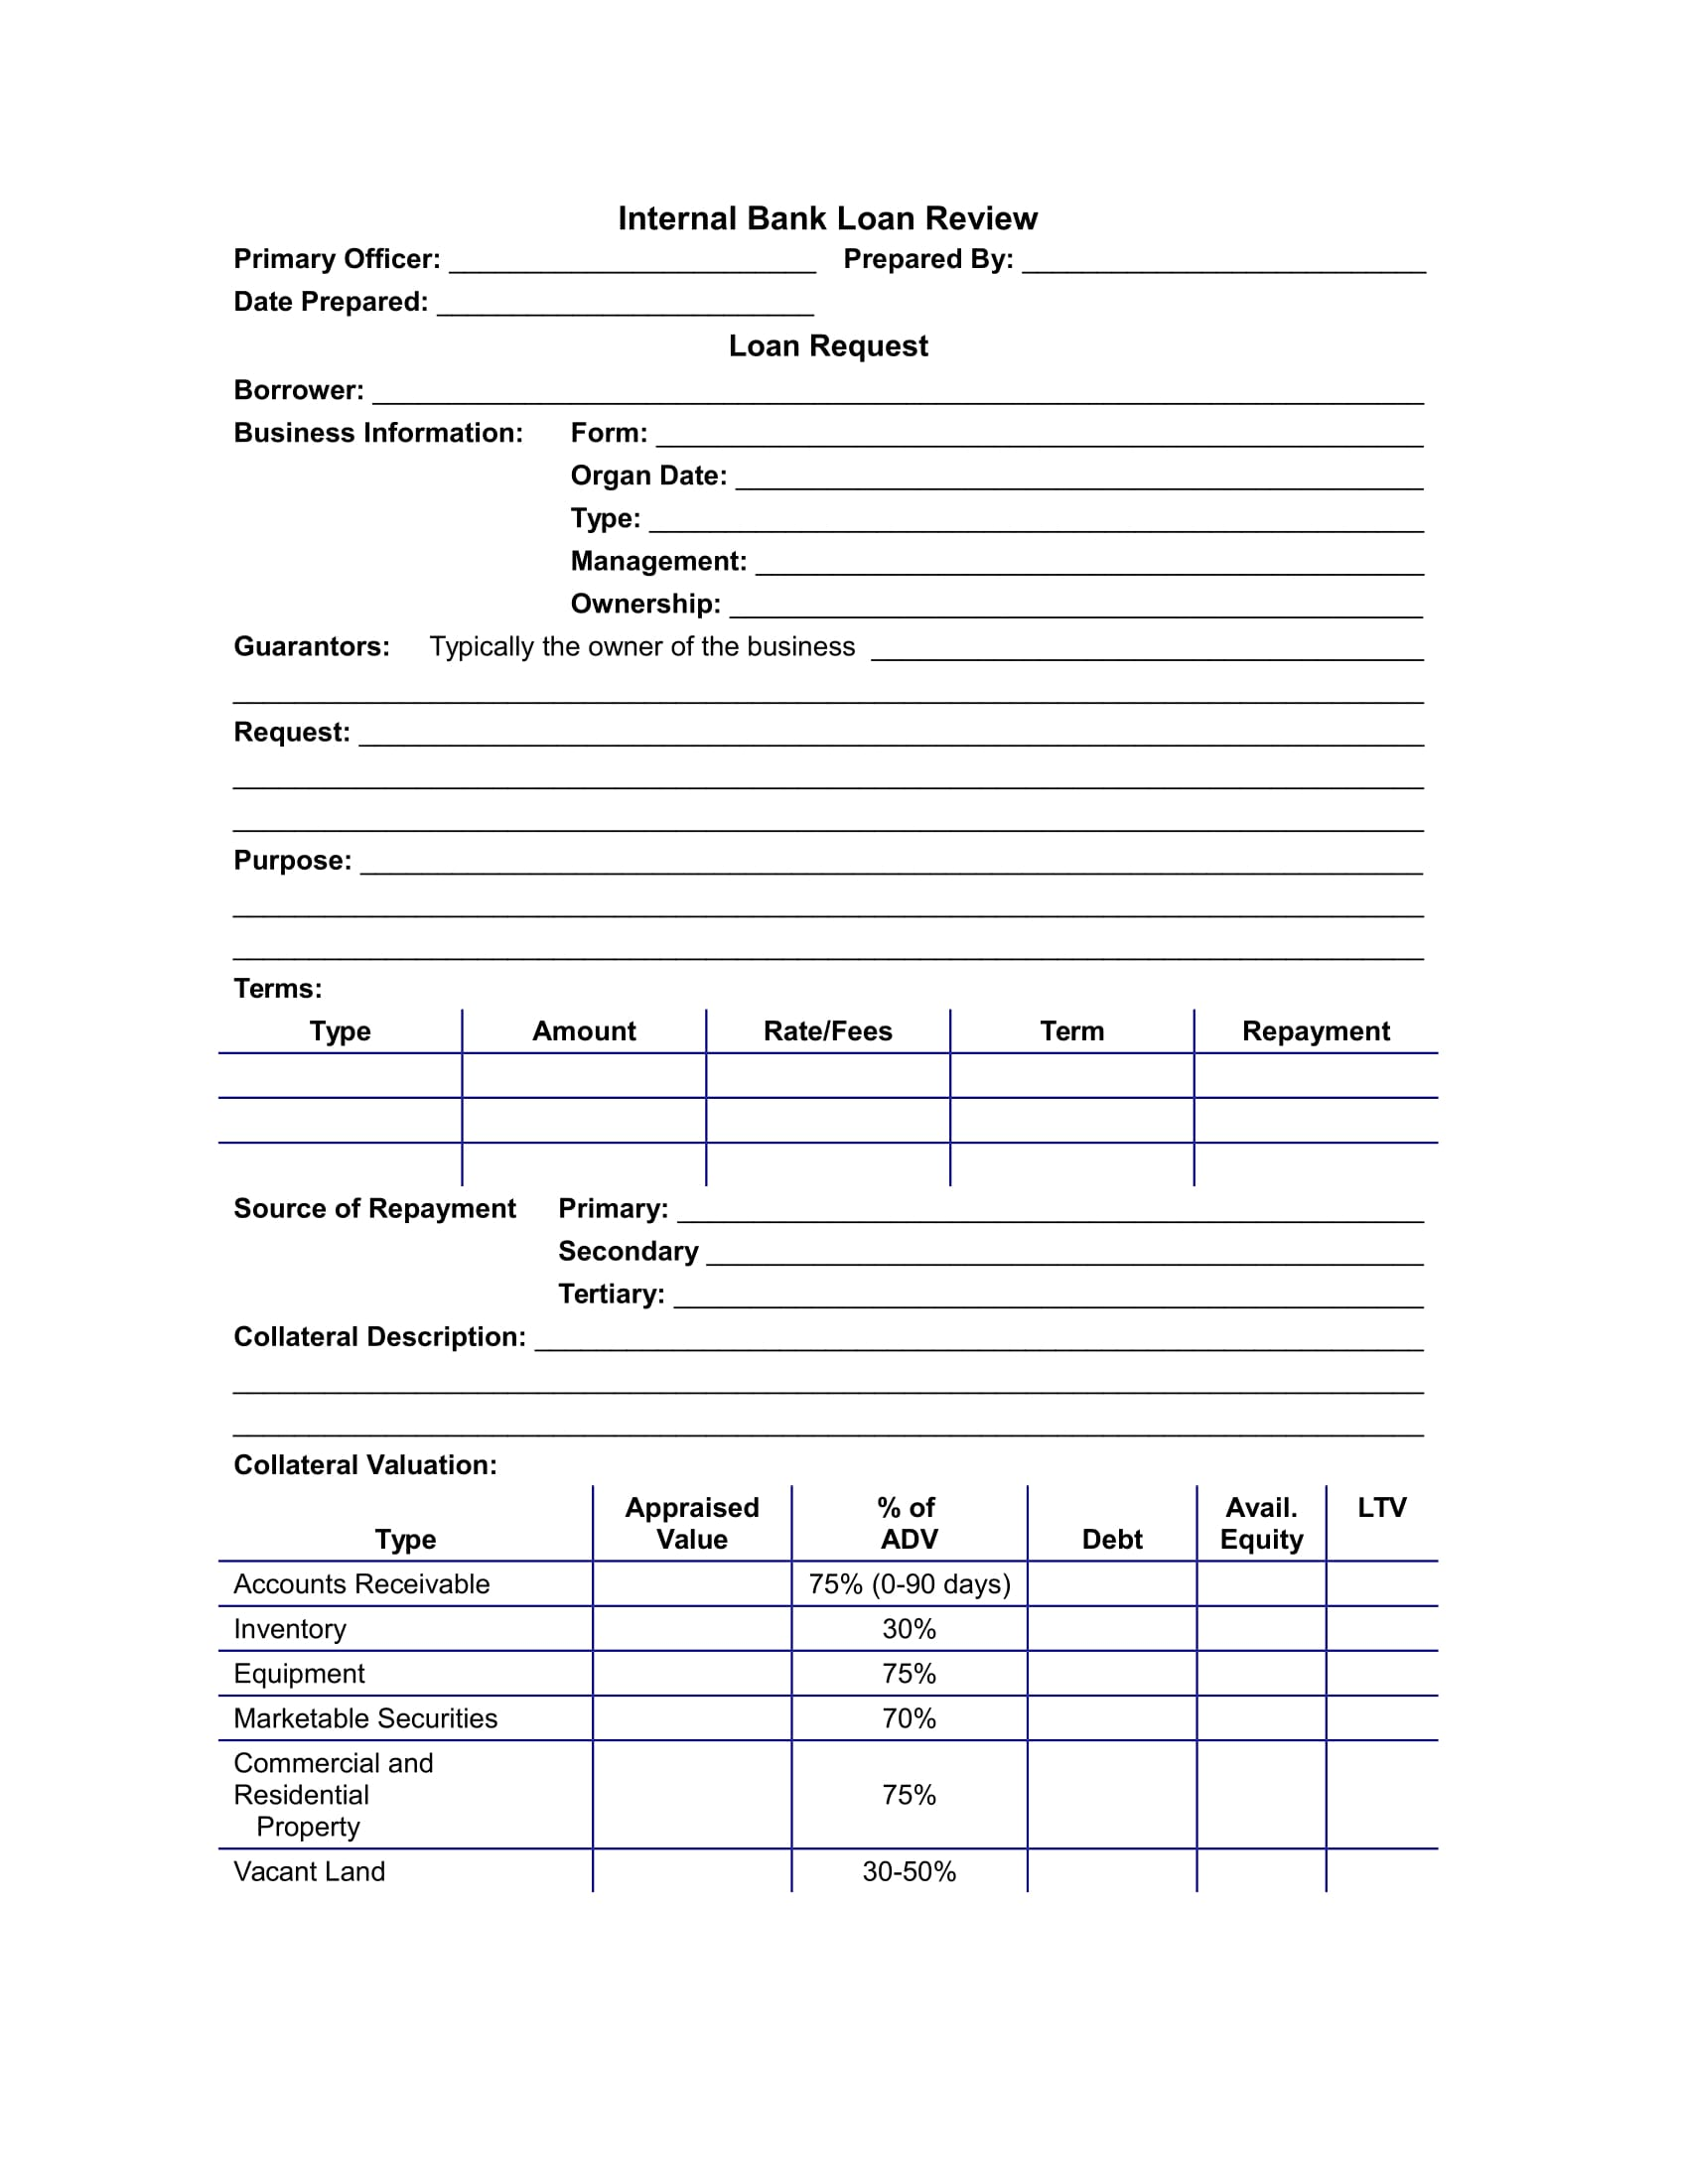 bank loan application request review form 1